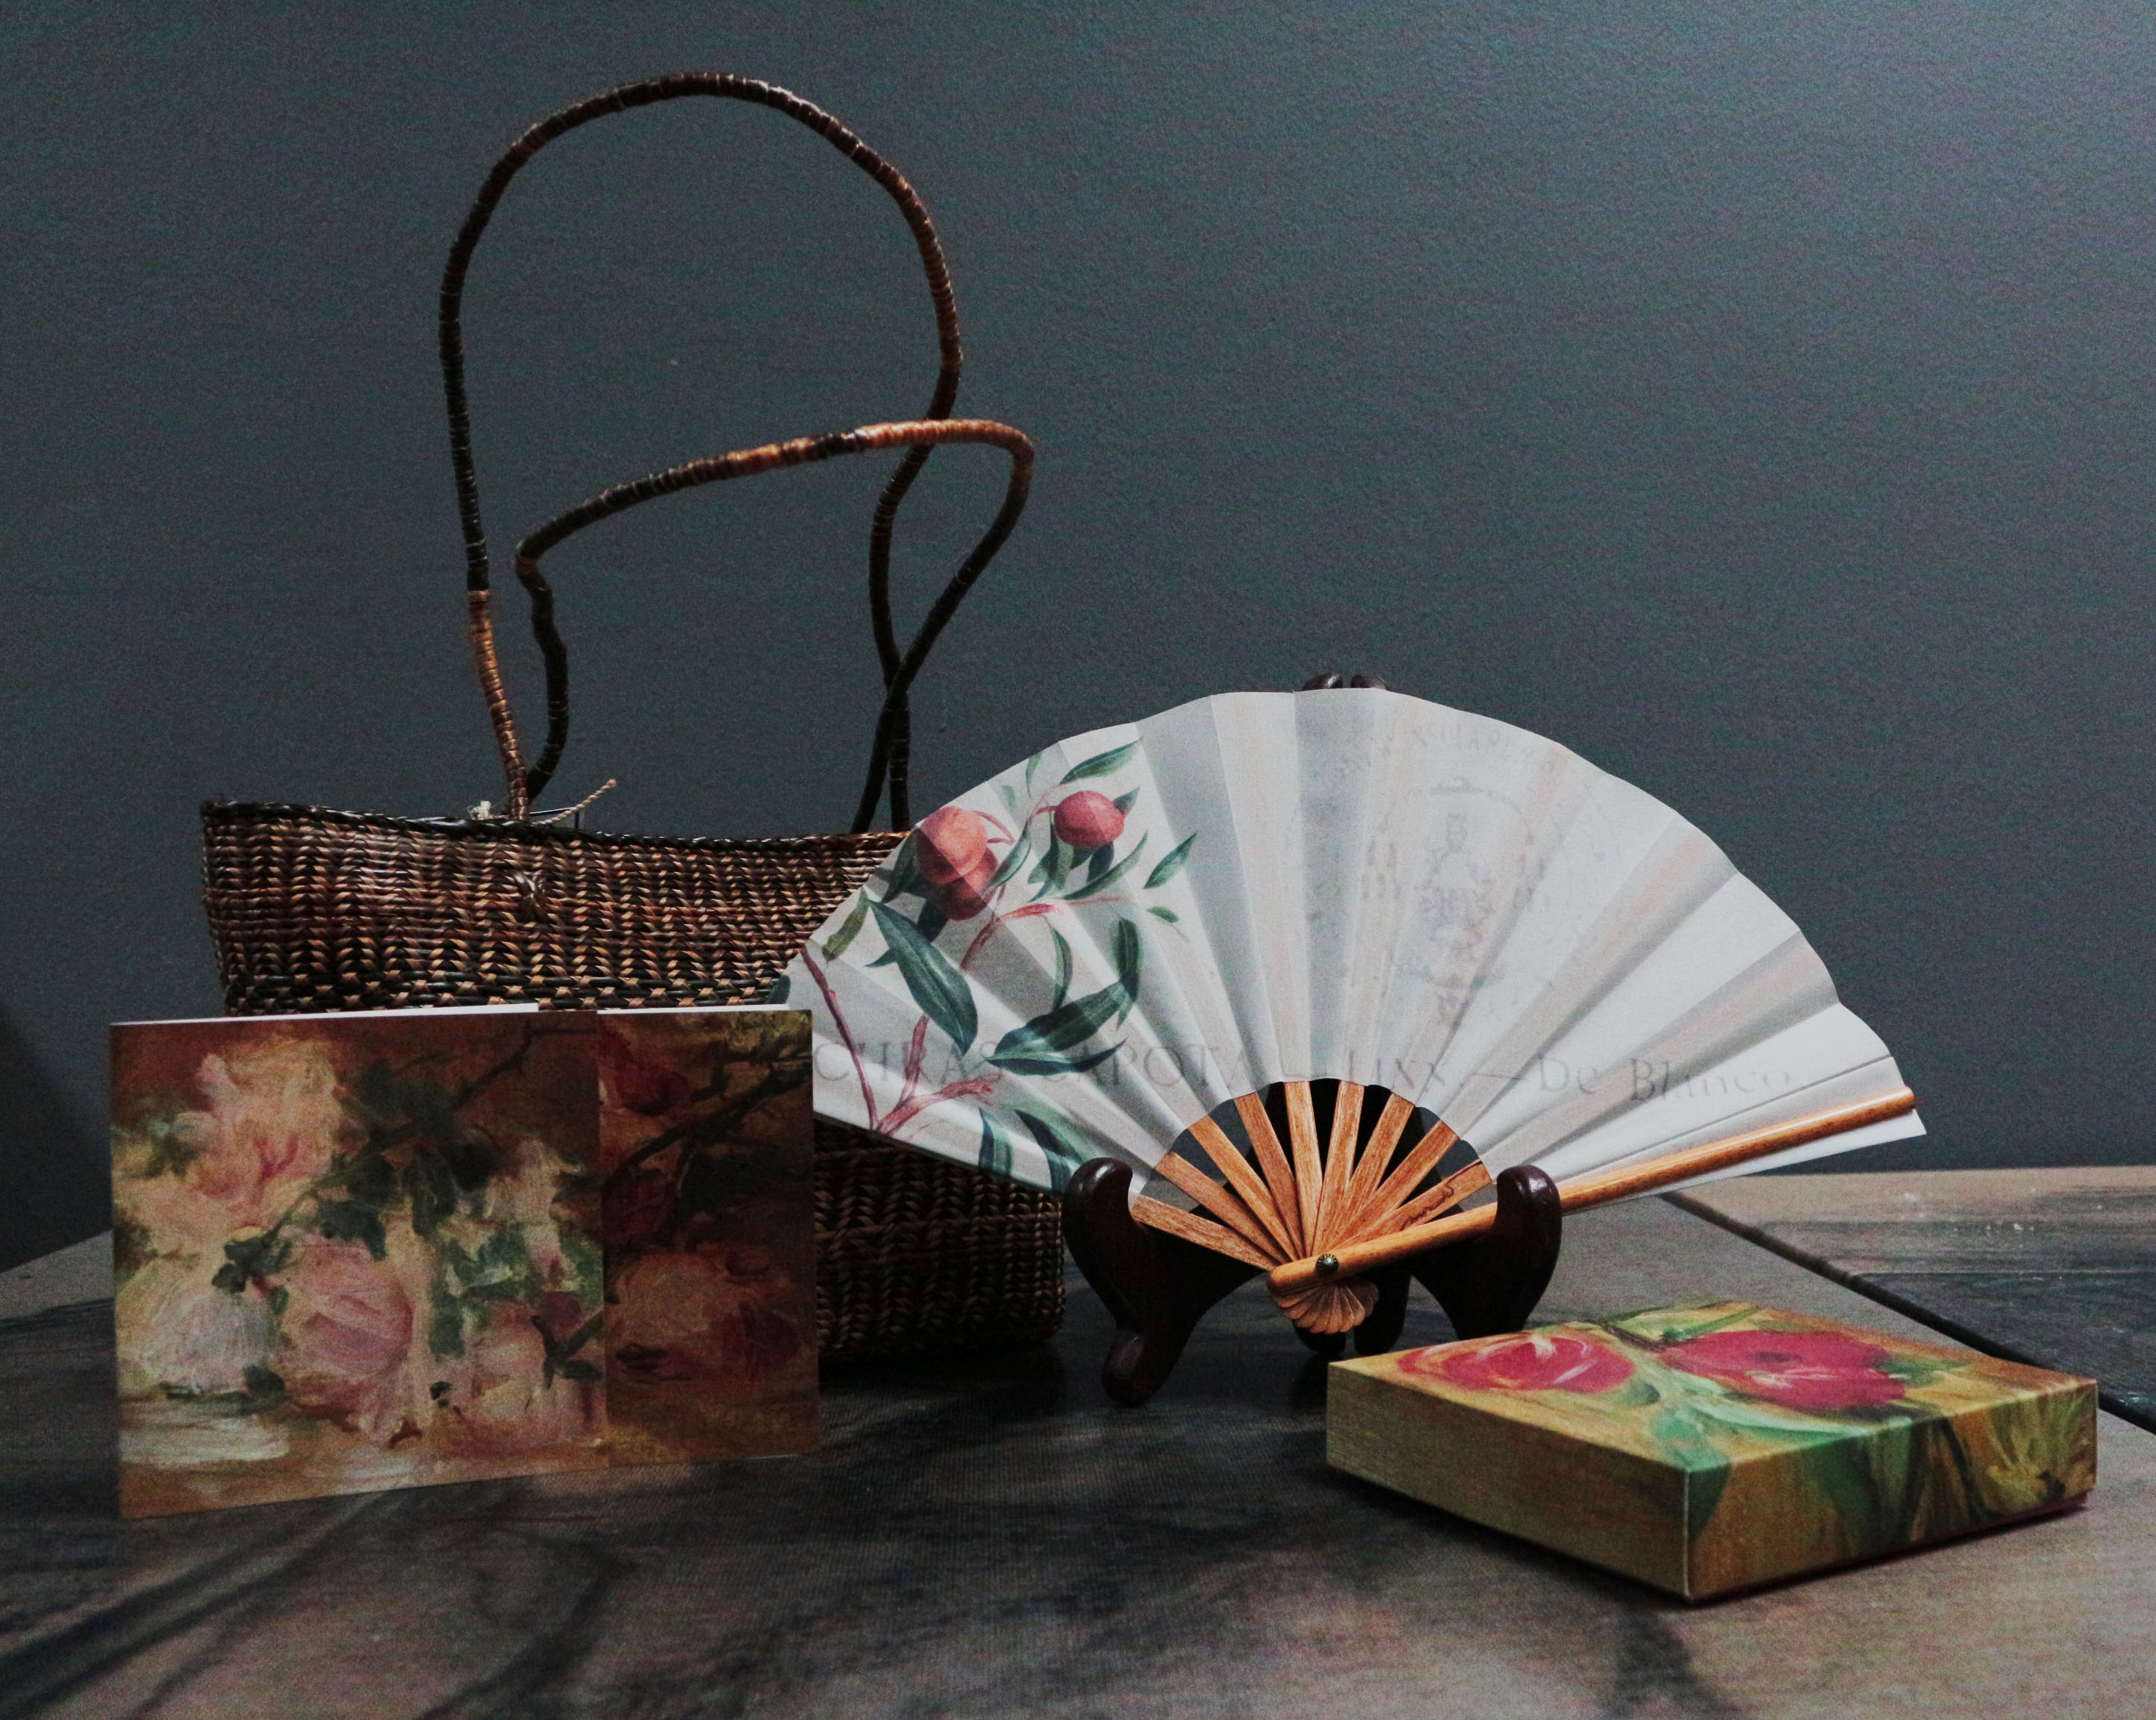 Luna note cards (set of 12), P280; Hand-woven nito bag, P930; Blanco fan, P650